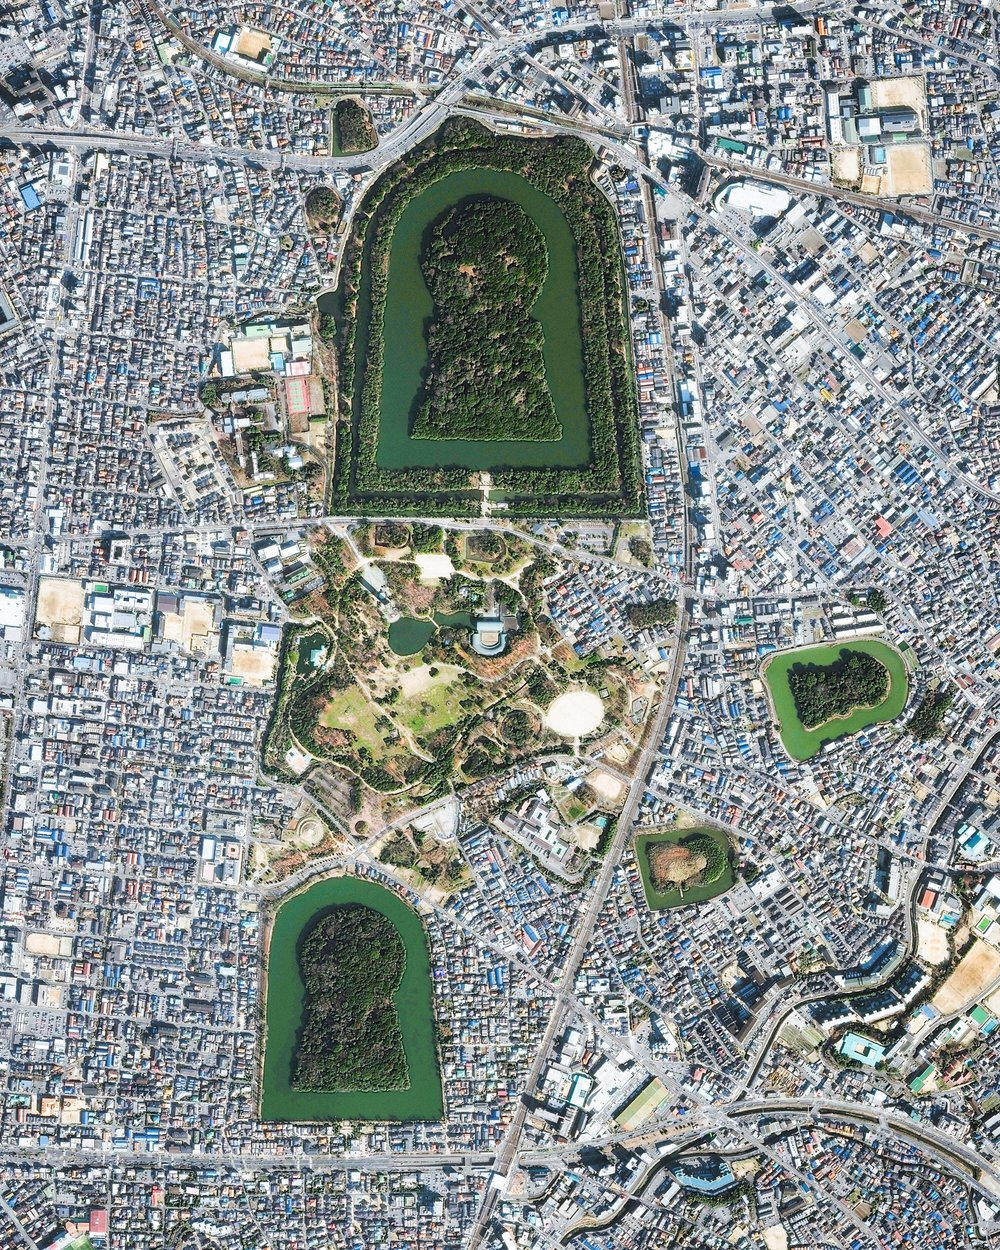 "Keyhole-shaped tumuli are scattered throughout the city of Sakai in Japan's Osaka Prefecture. A tumulus is a mound of earth or stone raised over a grave, and the largest one shown in this Overview is the final resting place of Emperor Nintoku. Nearly 1,600 feet (486 m) long with a mound 115 feet (35 m) high, it covers the largest area of any tomb in the world.  34°33'45.2""N, 135°29'11.1""E  Source imagery: DigitalGlobe"